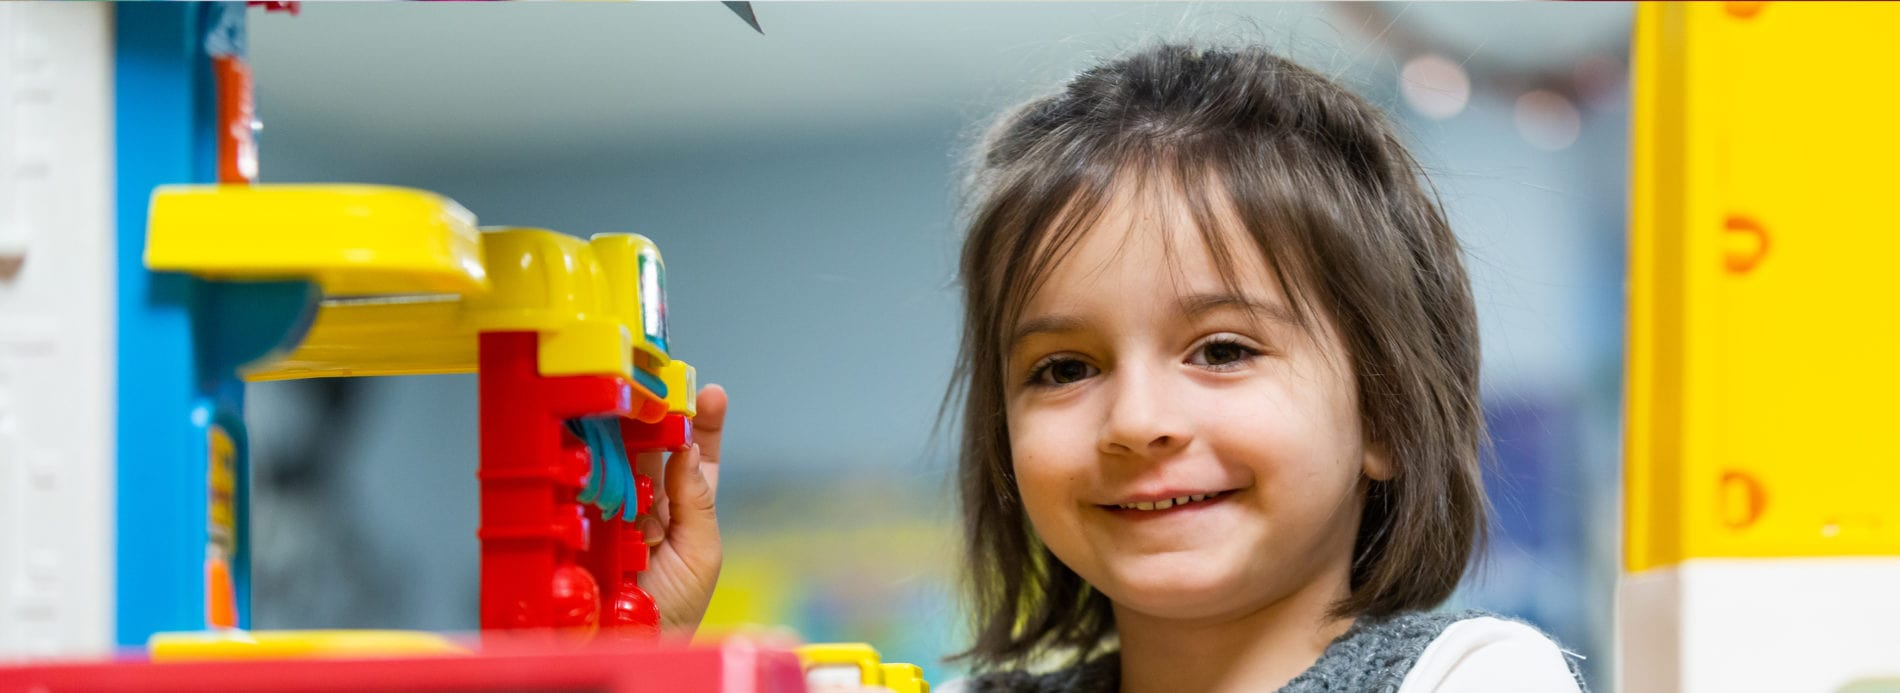 A preschooler smiles while she plays with toys